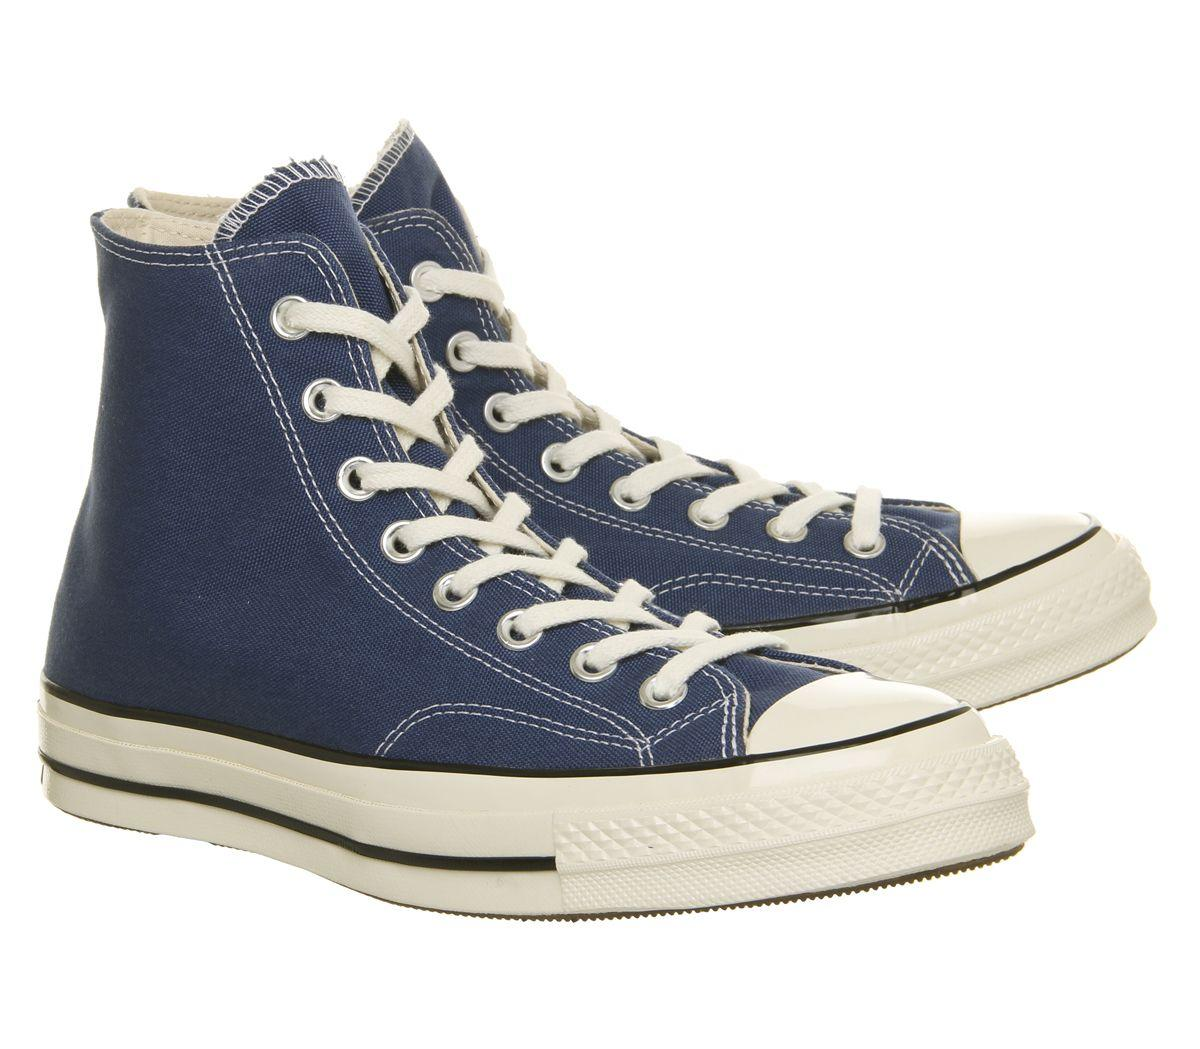 d6c7eb6c4734 Converse All Star Hi 70 s Trainers in Blue for Men - Lyst